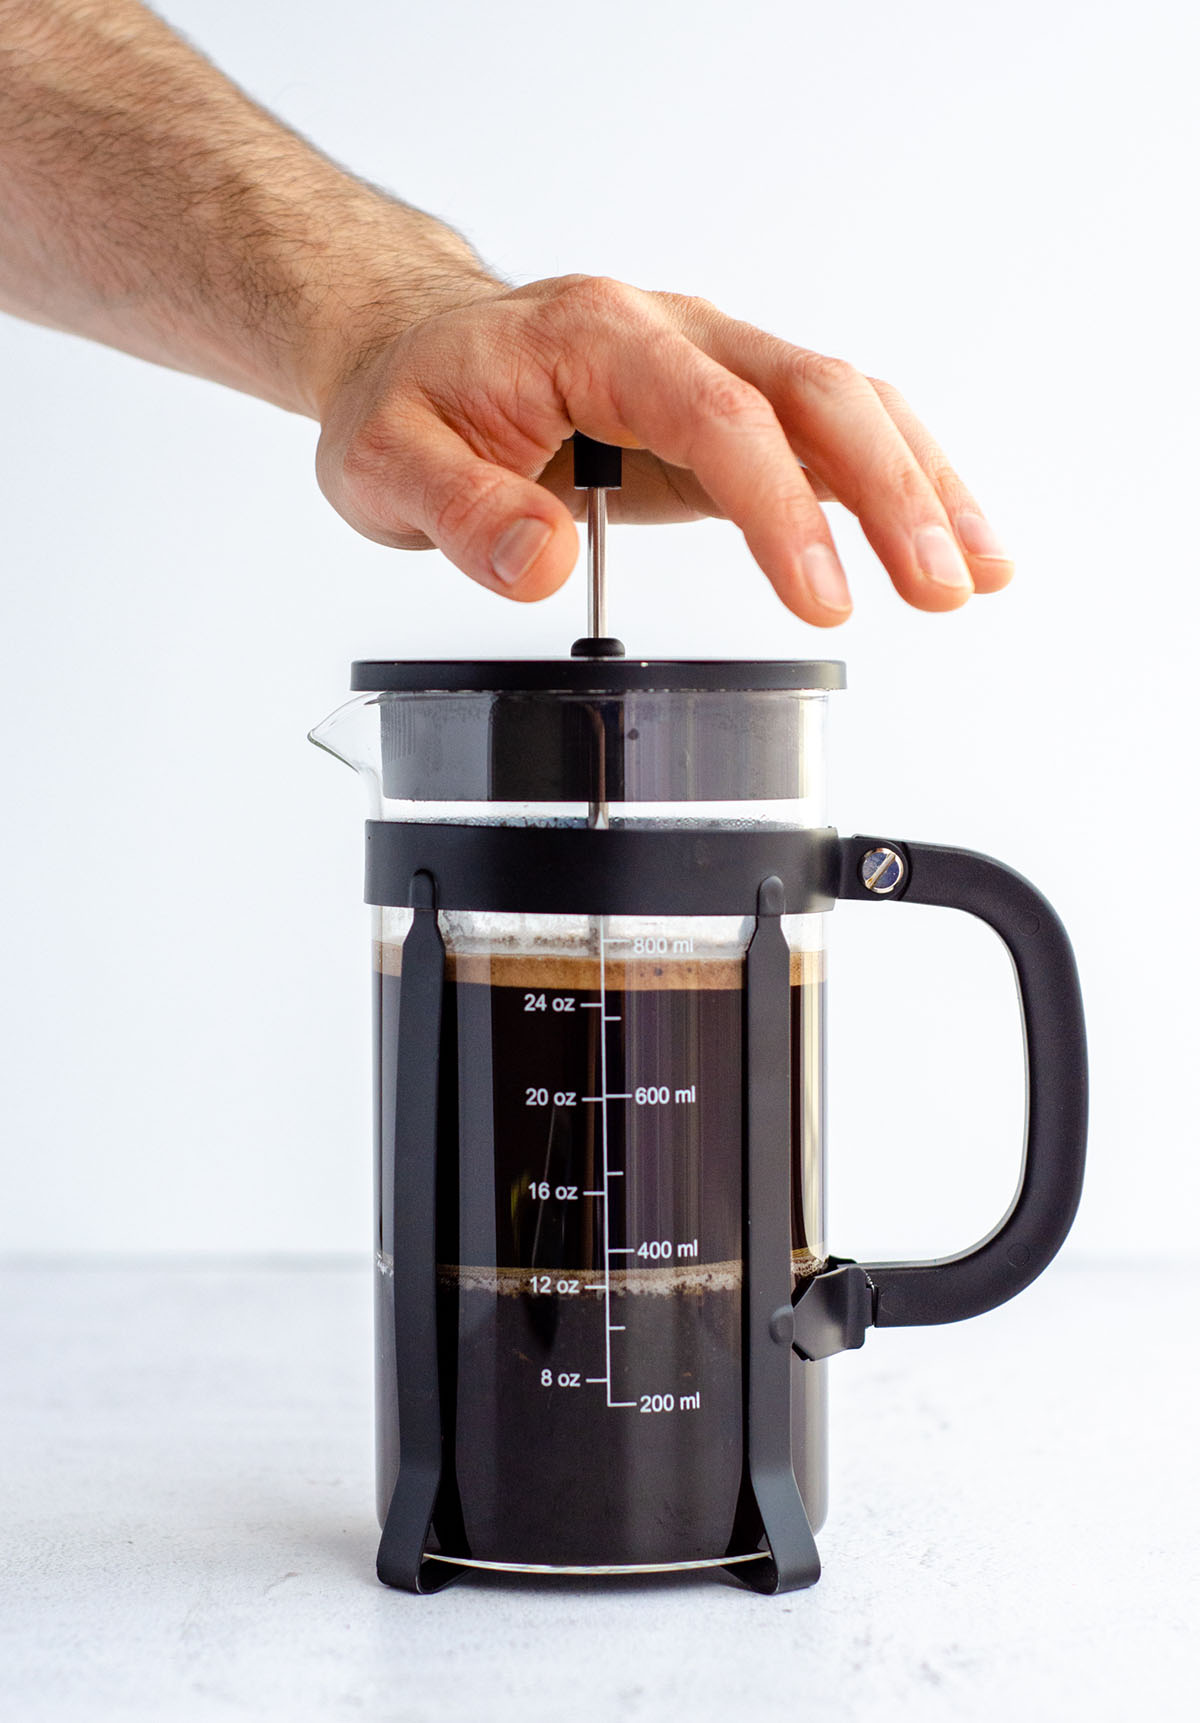 a hand pressing down the plunger on a french press coffee maker